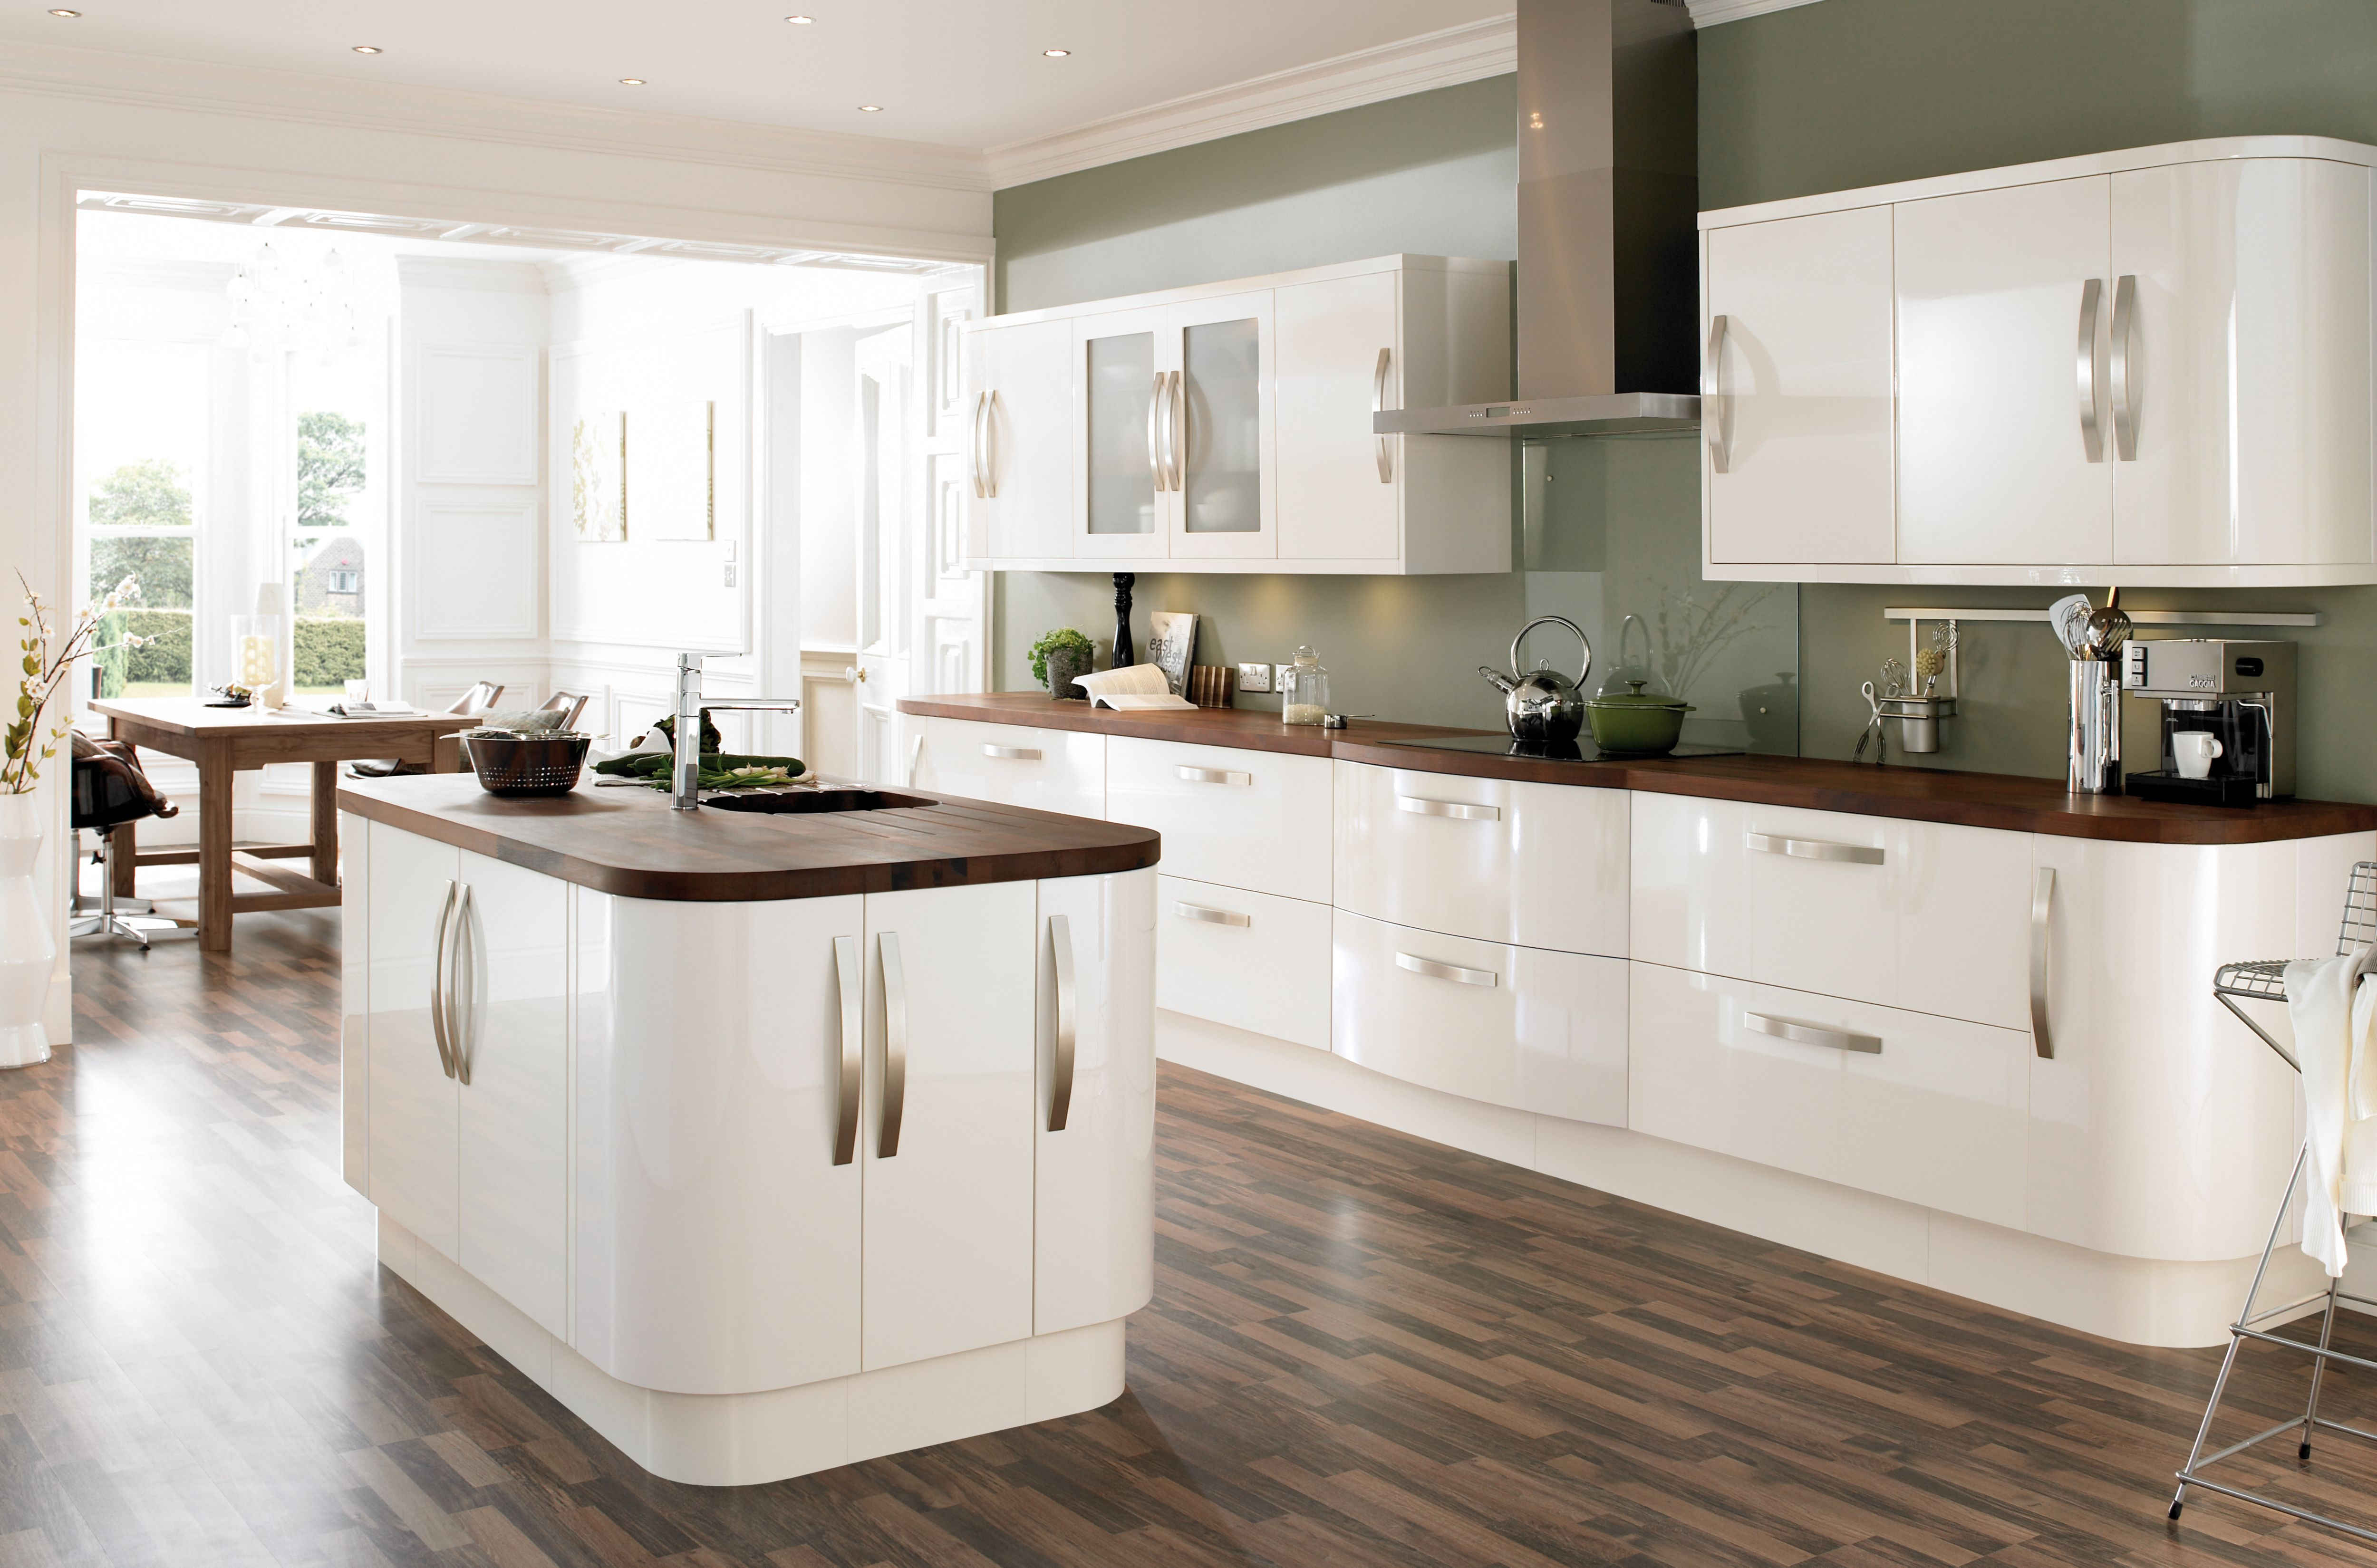 cooke amp lewis high gloss cream kitchen ranges kitchen glossy cream kitchen cabinets google search ideas for